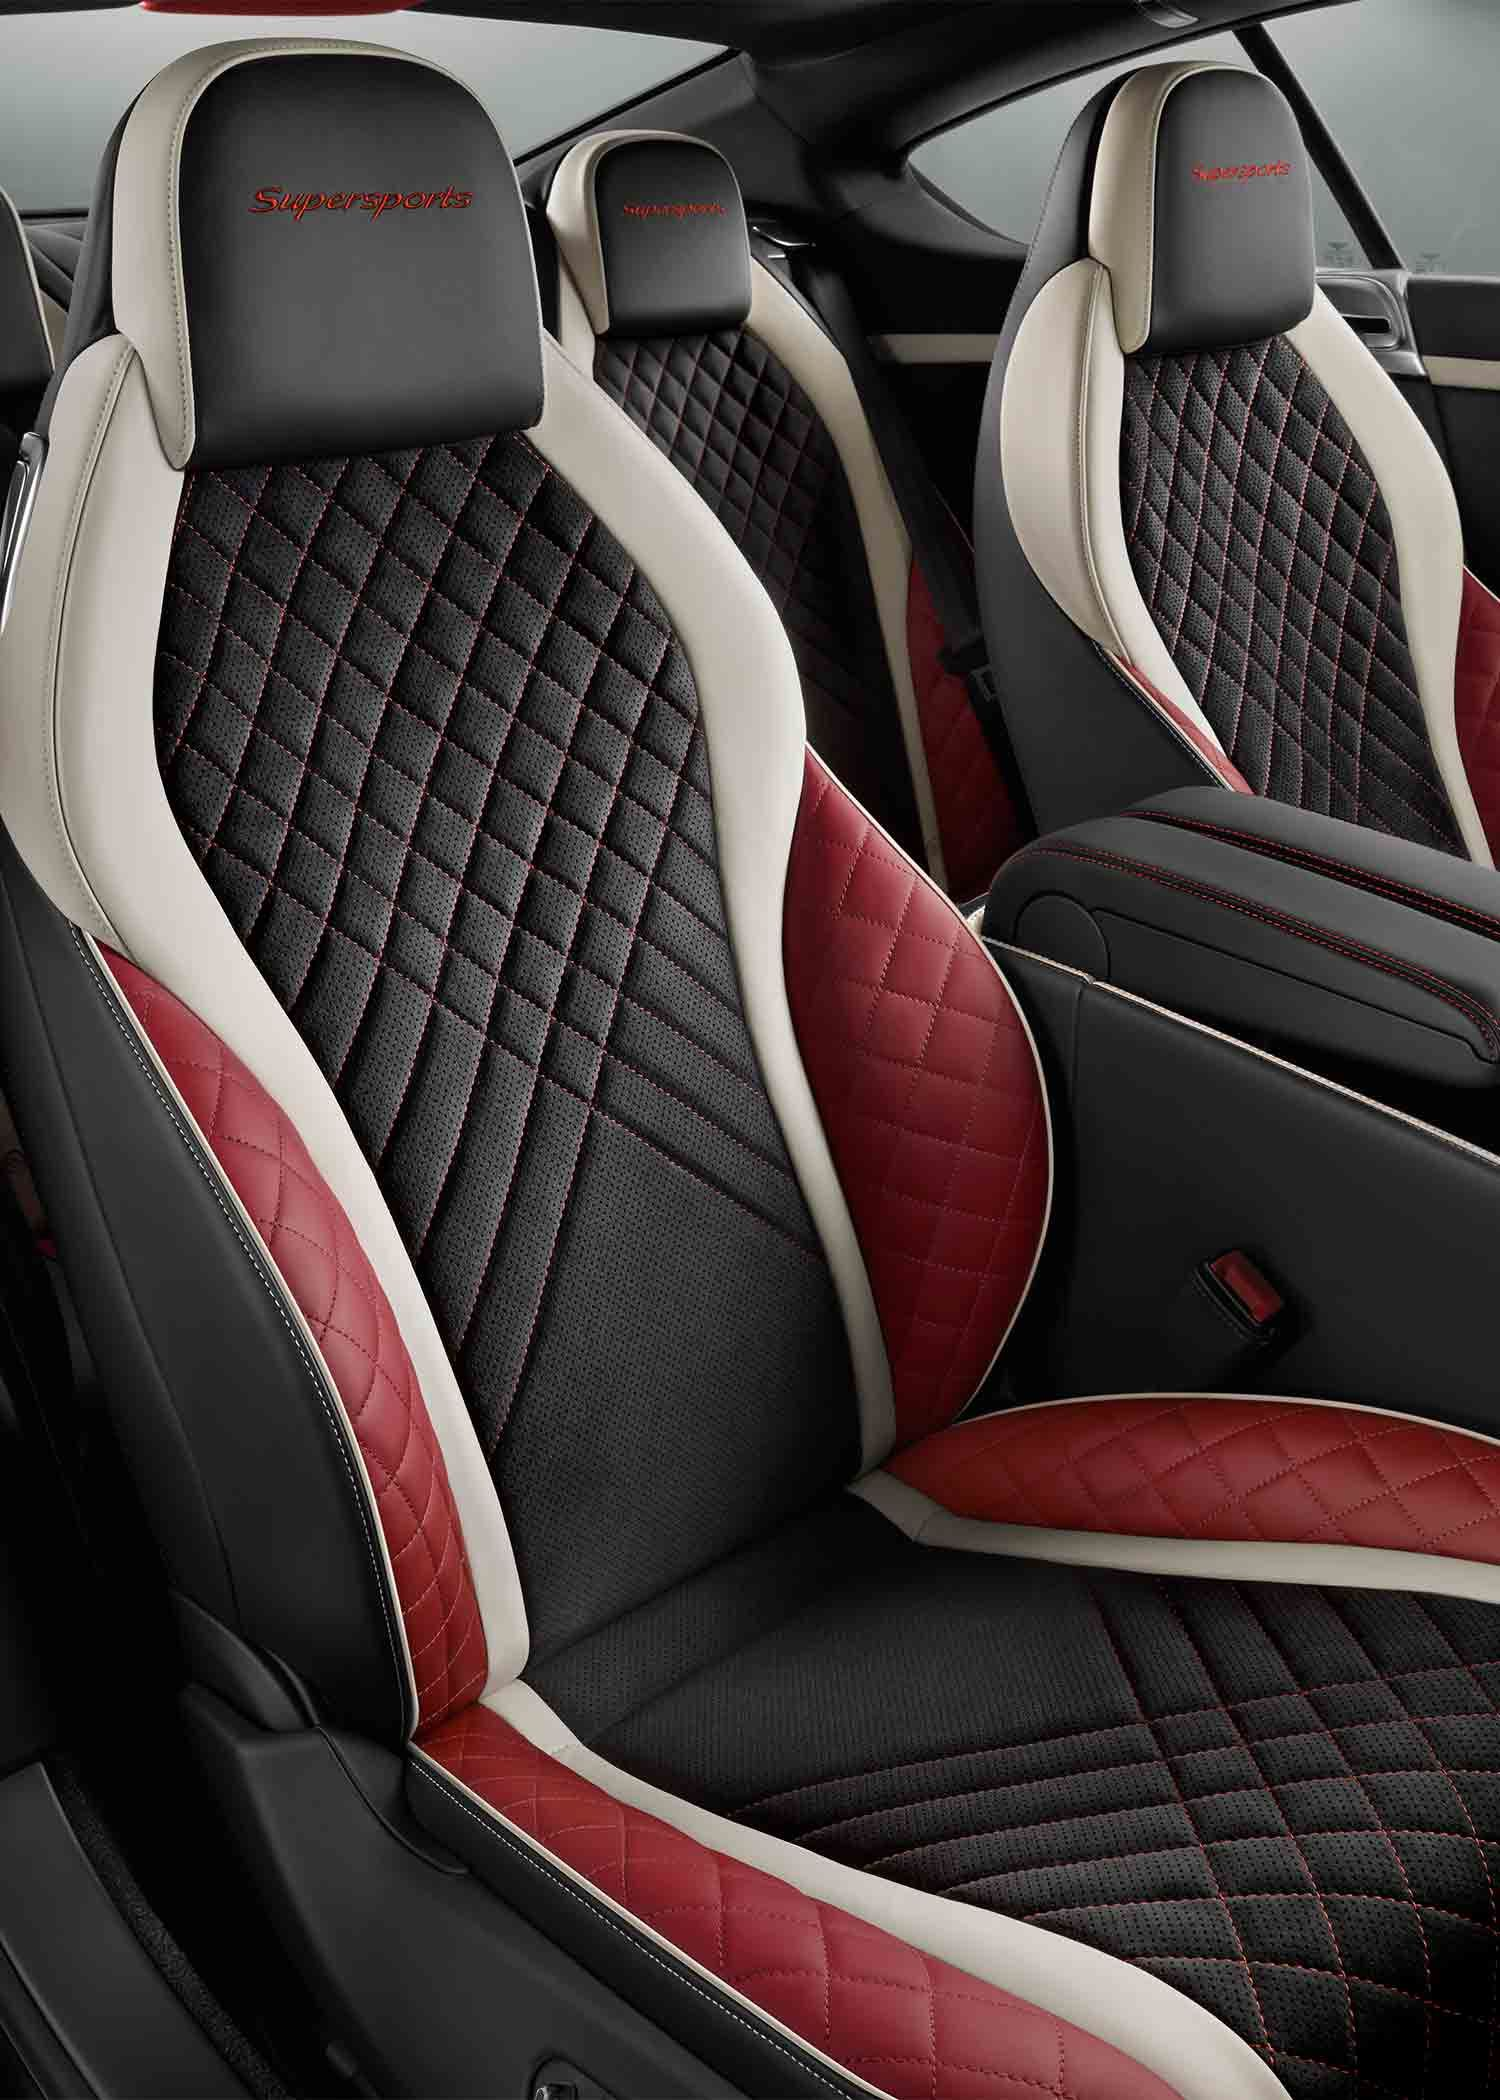 Bentley 2017 Car Interior Upholstery Automotive Truck